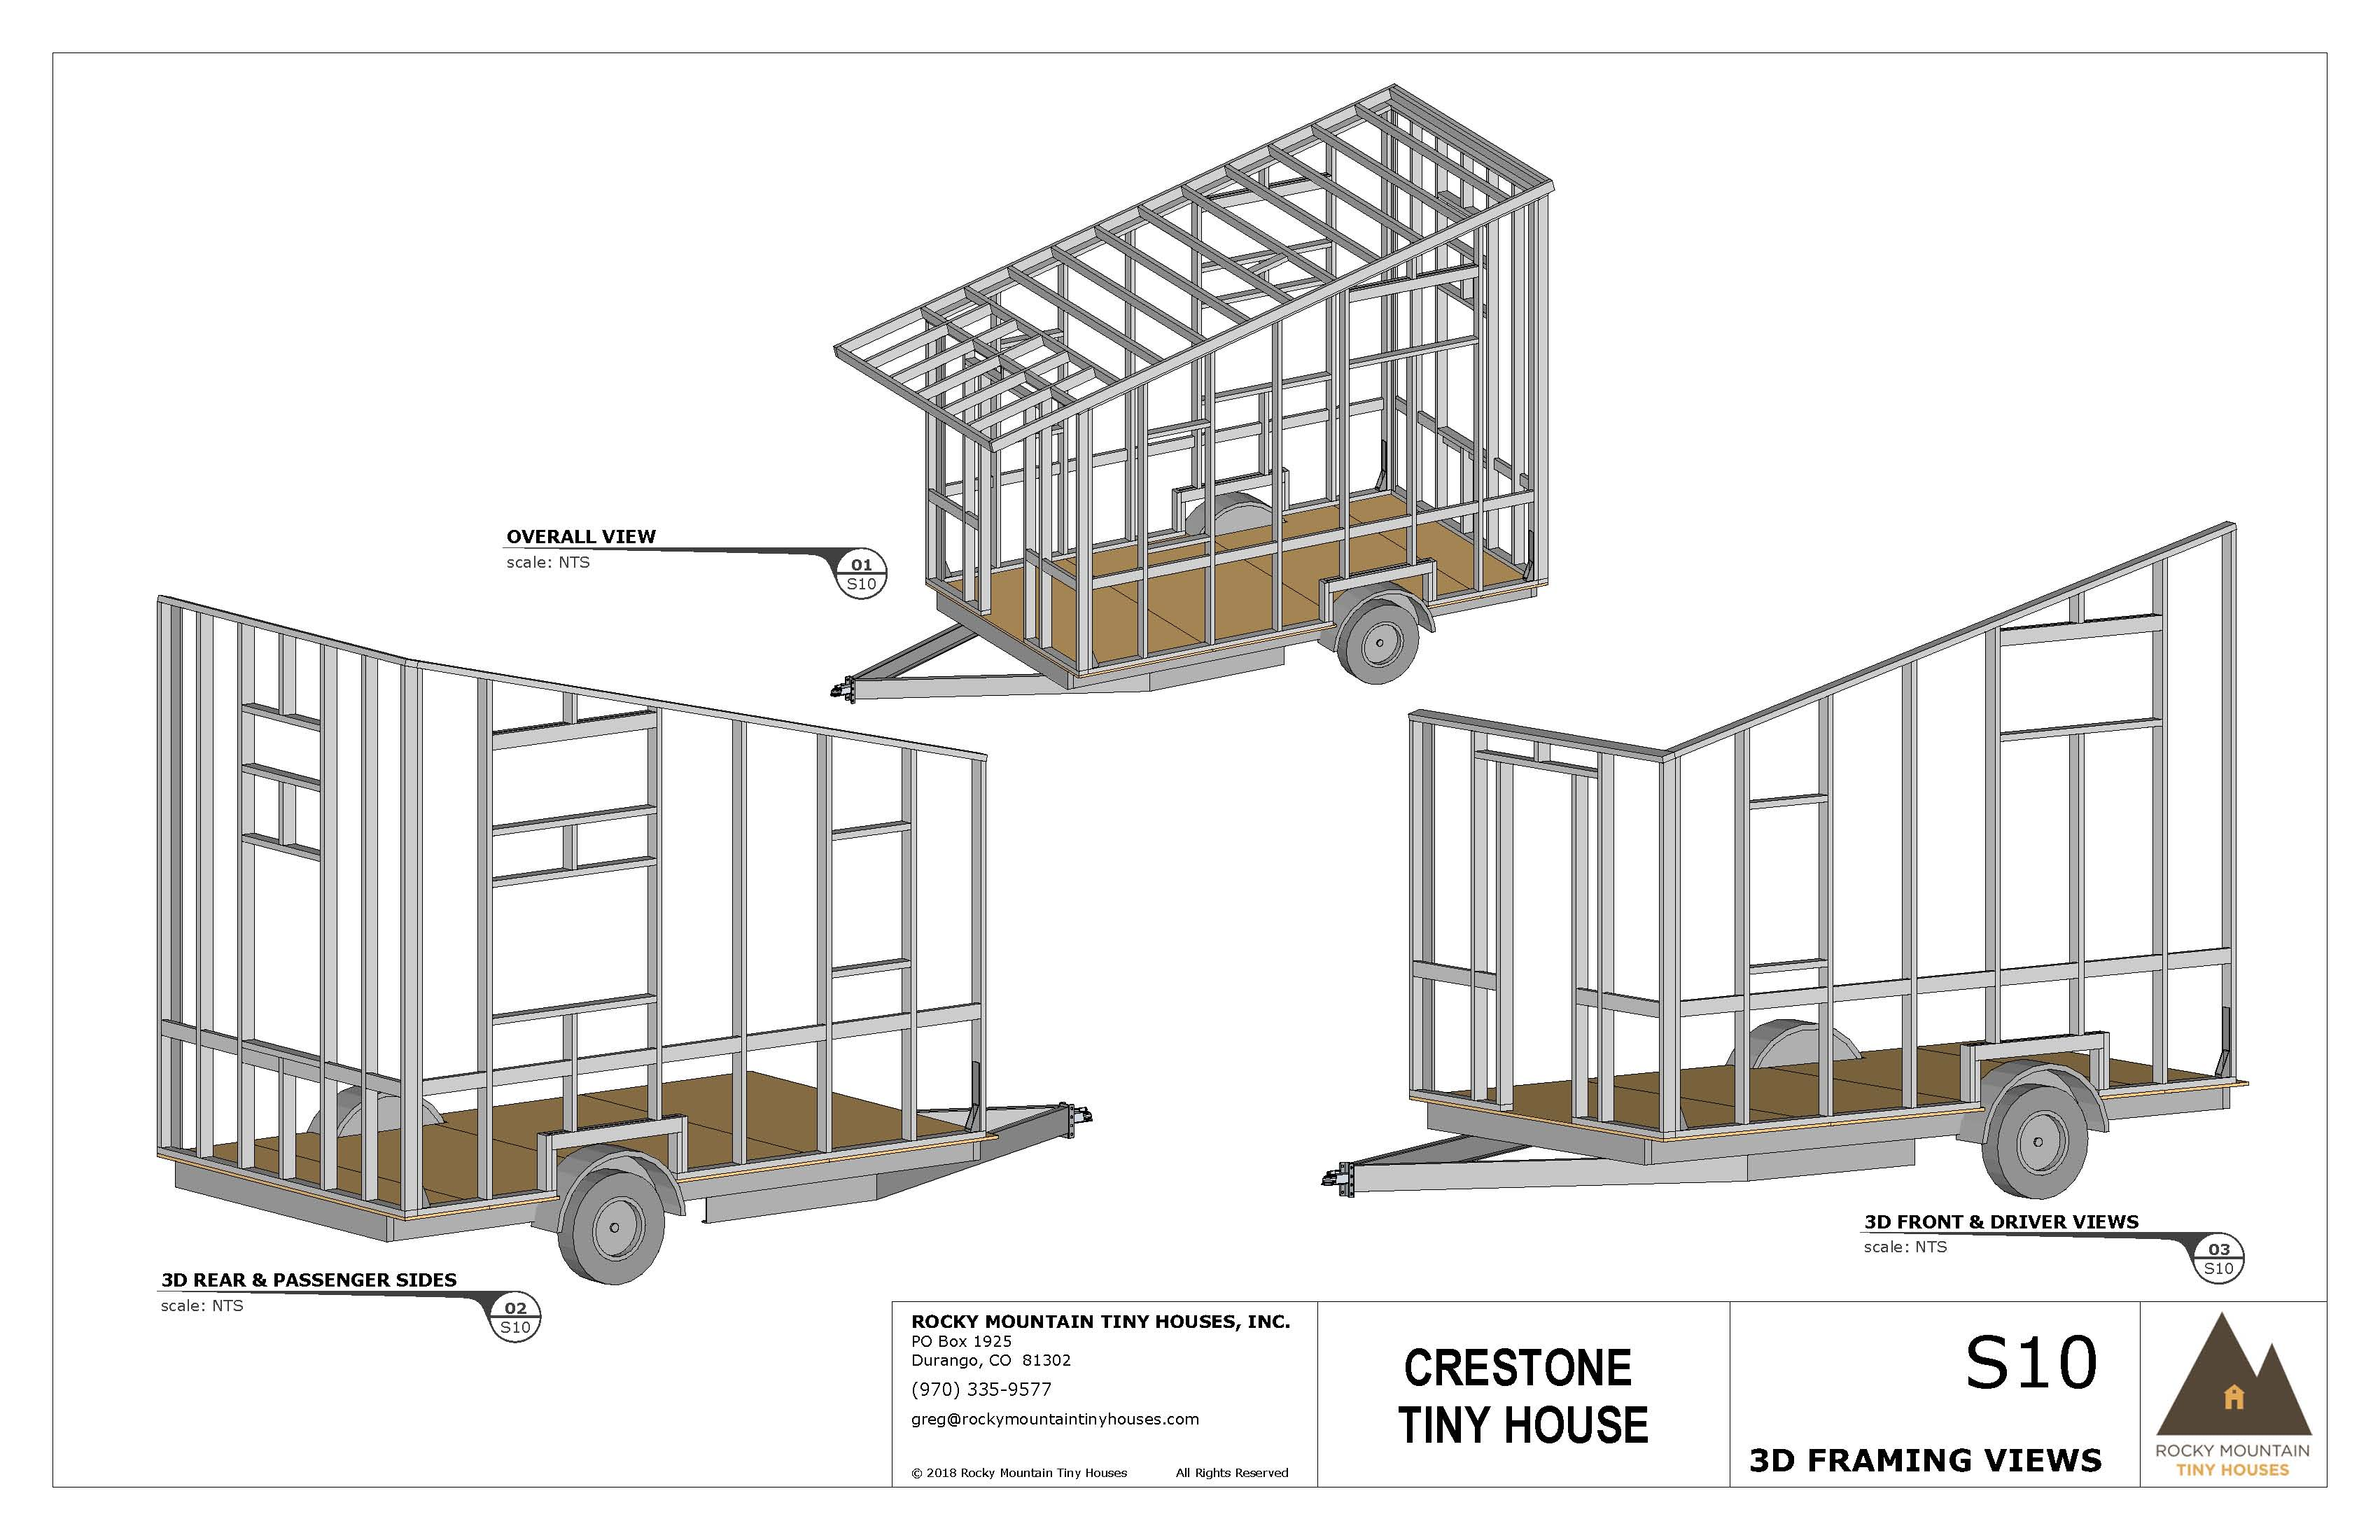 Crestone 14' Tiny House Plans on house blueprints, house foundation, house types, house styles, house rendering, house layout, house framing, house structure, house maps, house clip art, house painting, house building, house drawings, house construction, house design, house exterior, house elevations, house plants, house models, house roof,